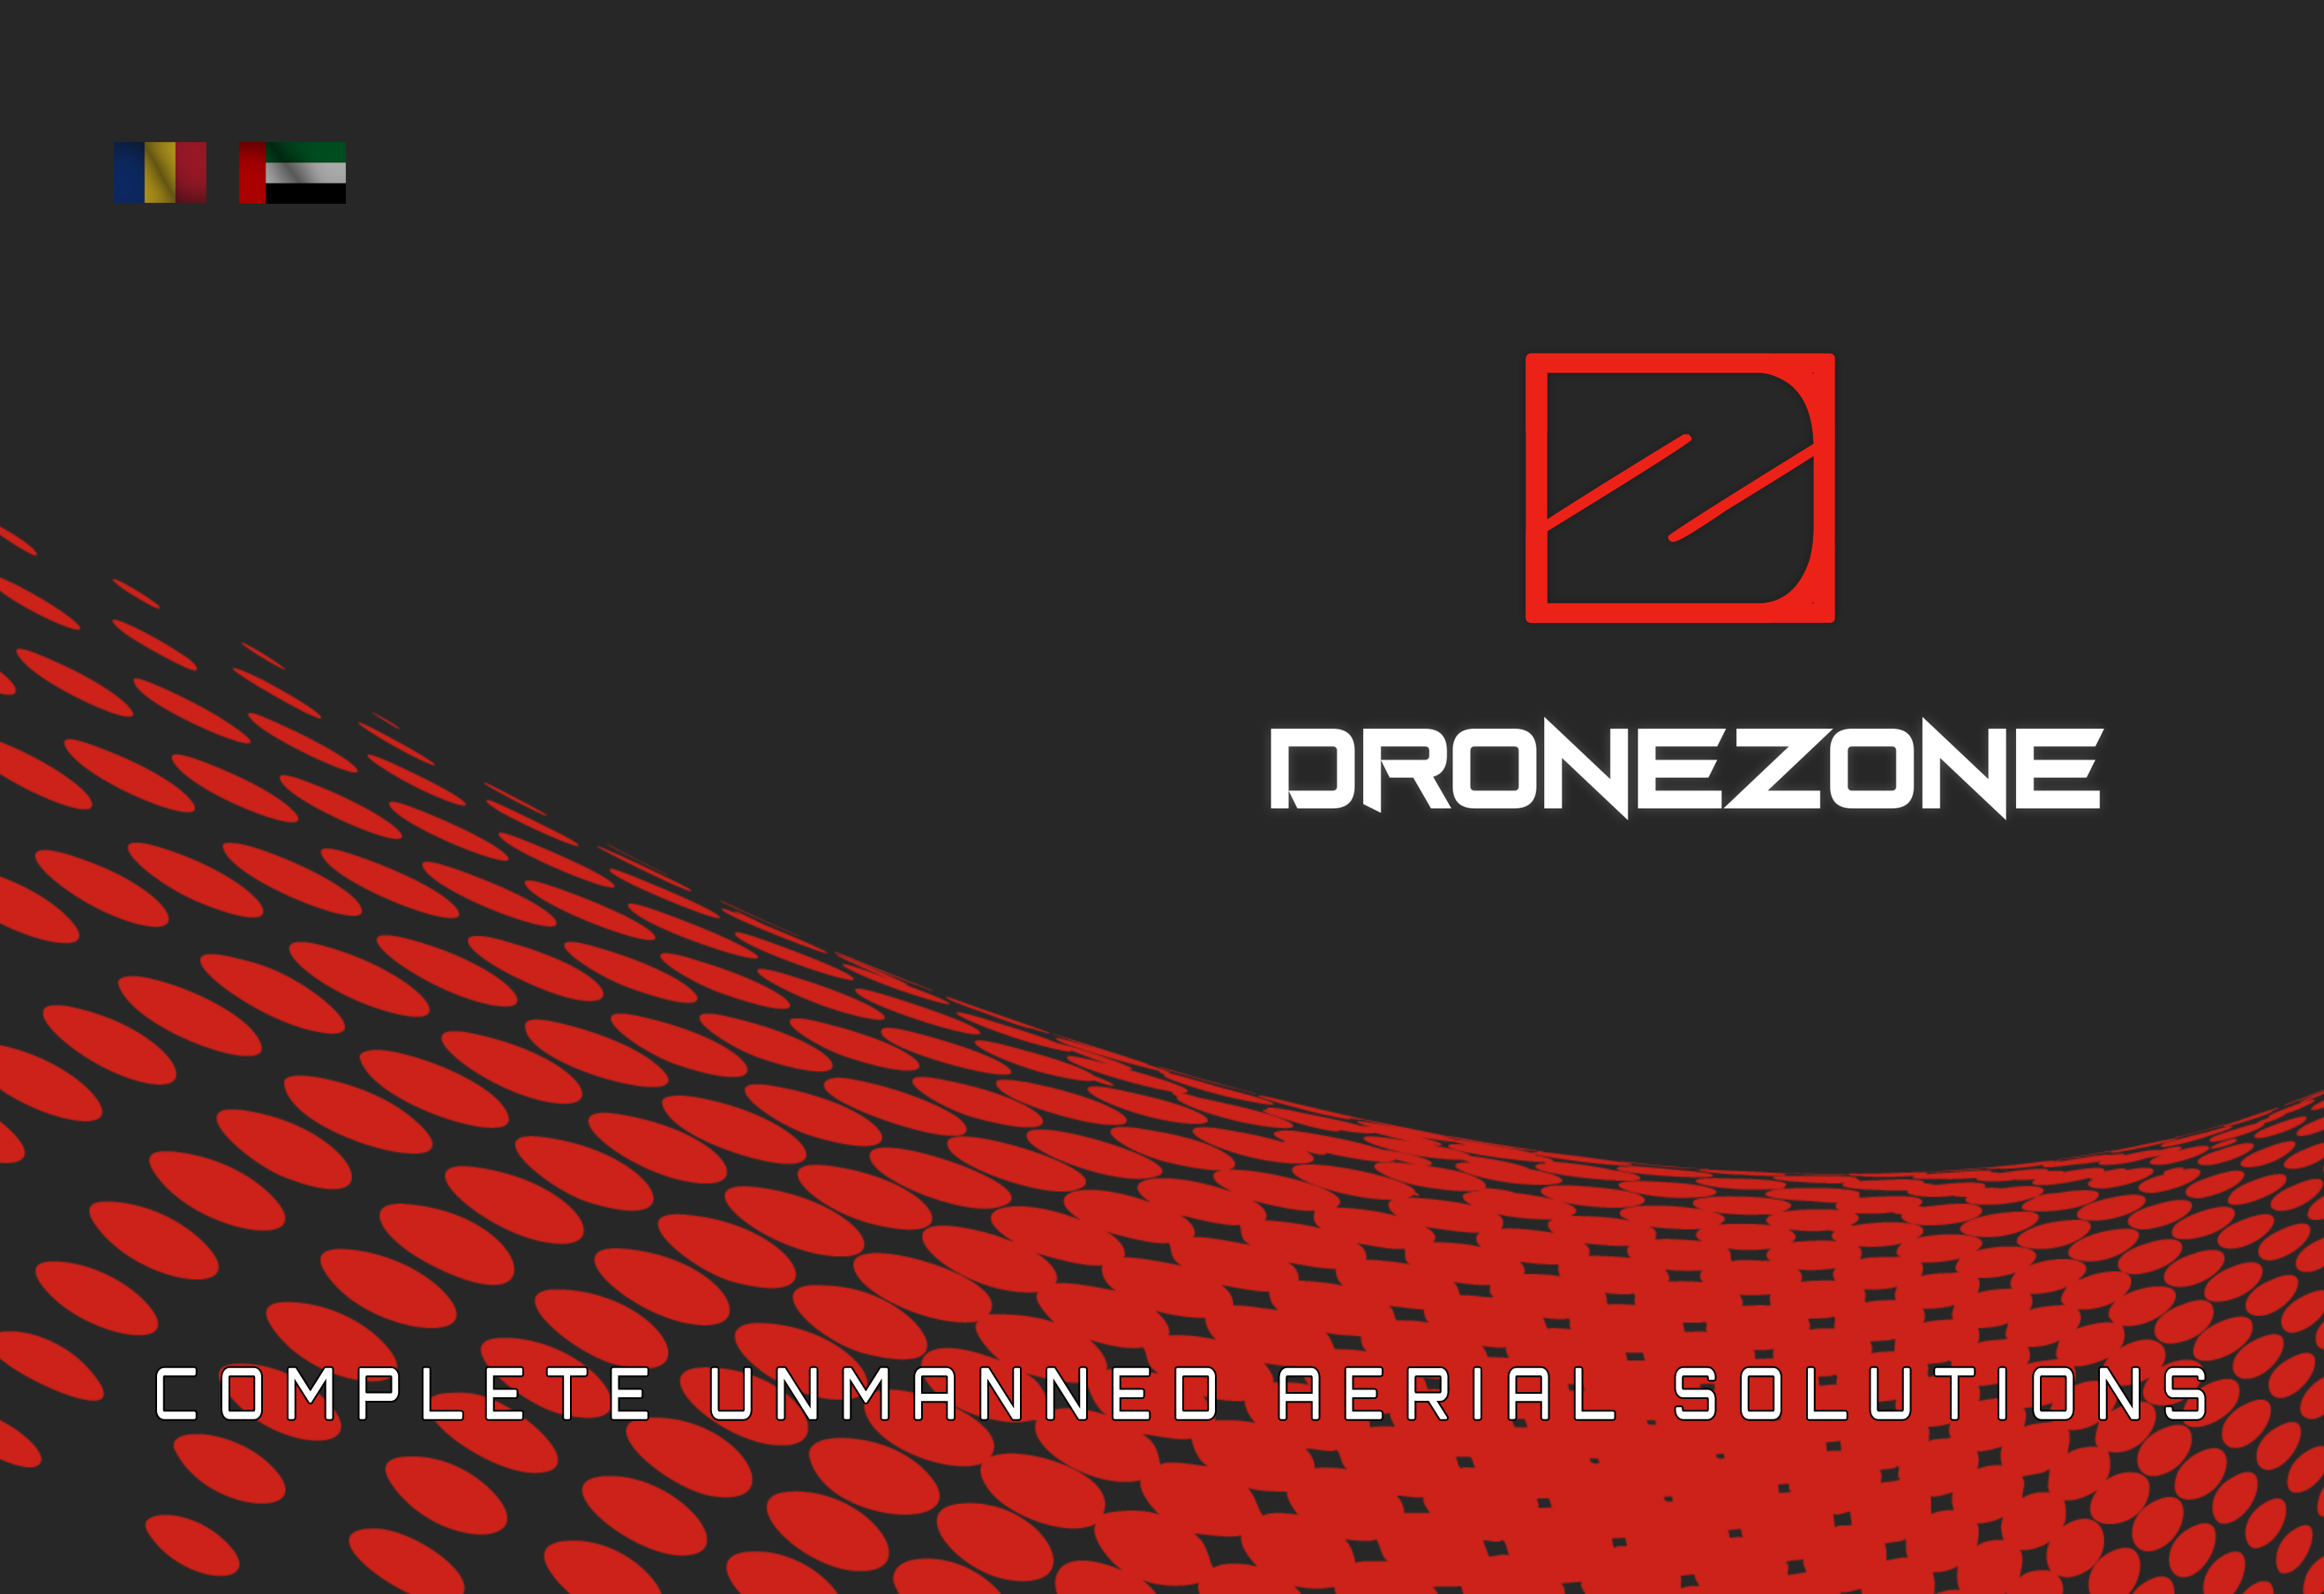 https://www.dronezone.ro/wp-content/uploads/2021/02/cop1.png